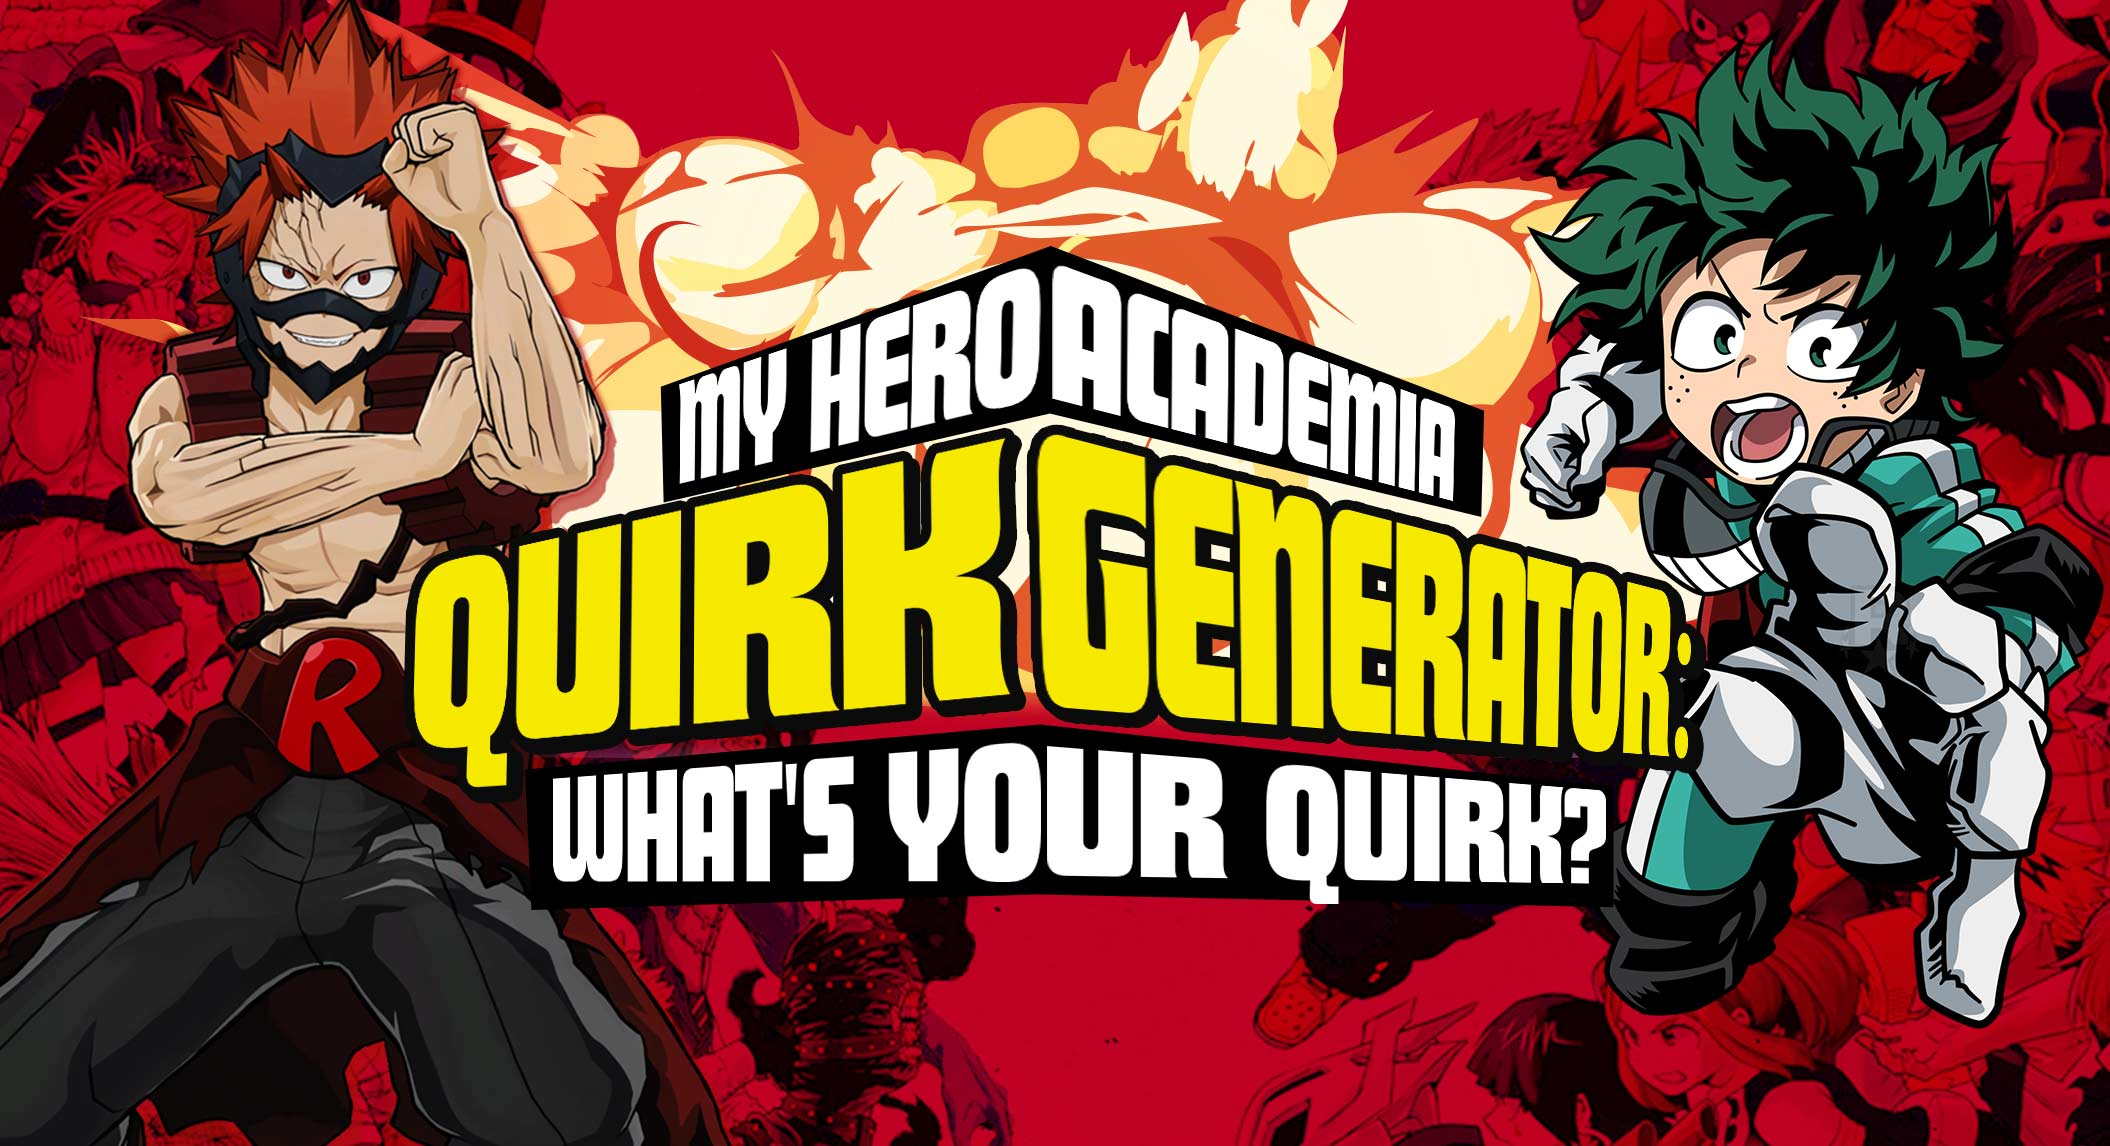 My Hero Academia Quirk Generator What's Your MHA Quirk   BrainFall